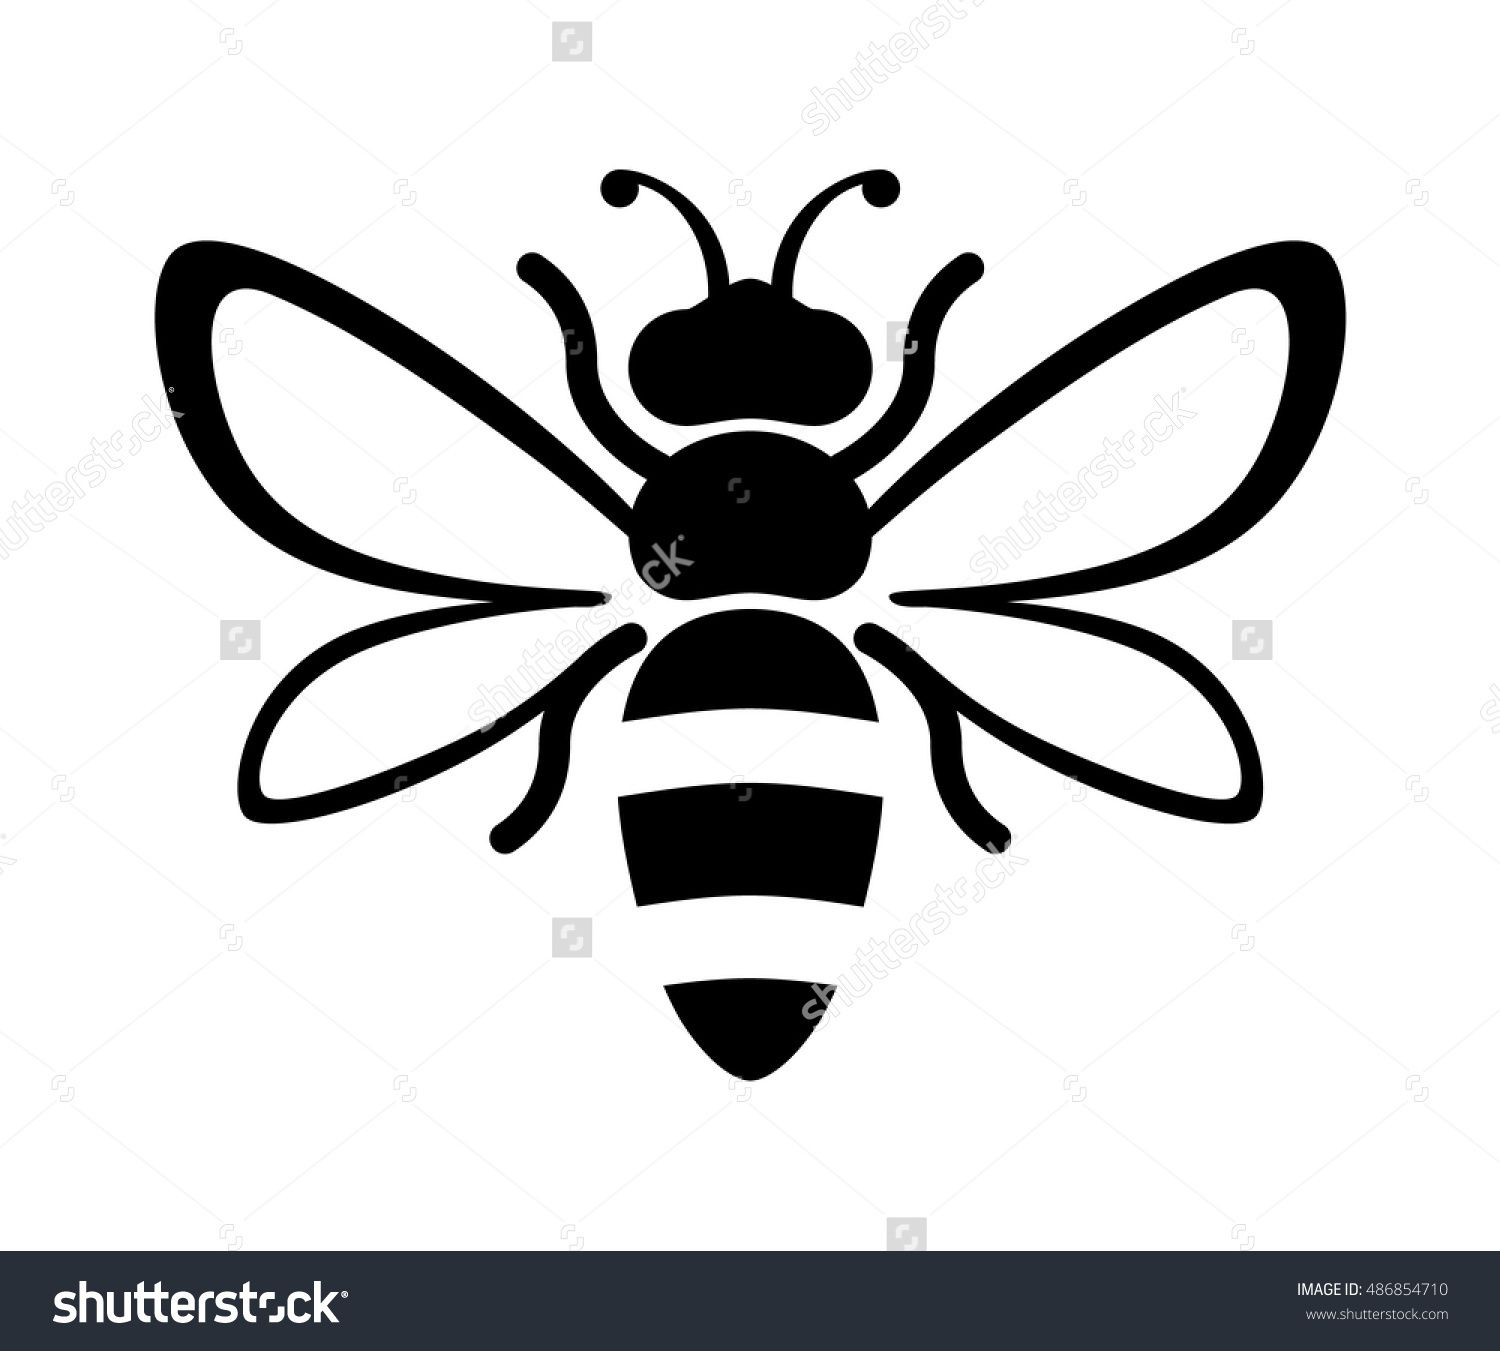 1500x1351 Graphic Illustration Of Silhouette Honey Bee. Isolated